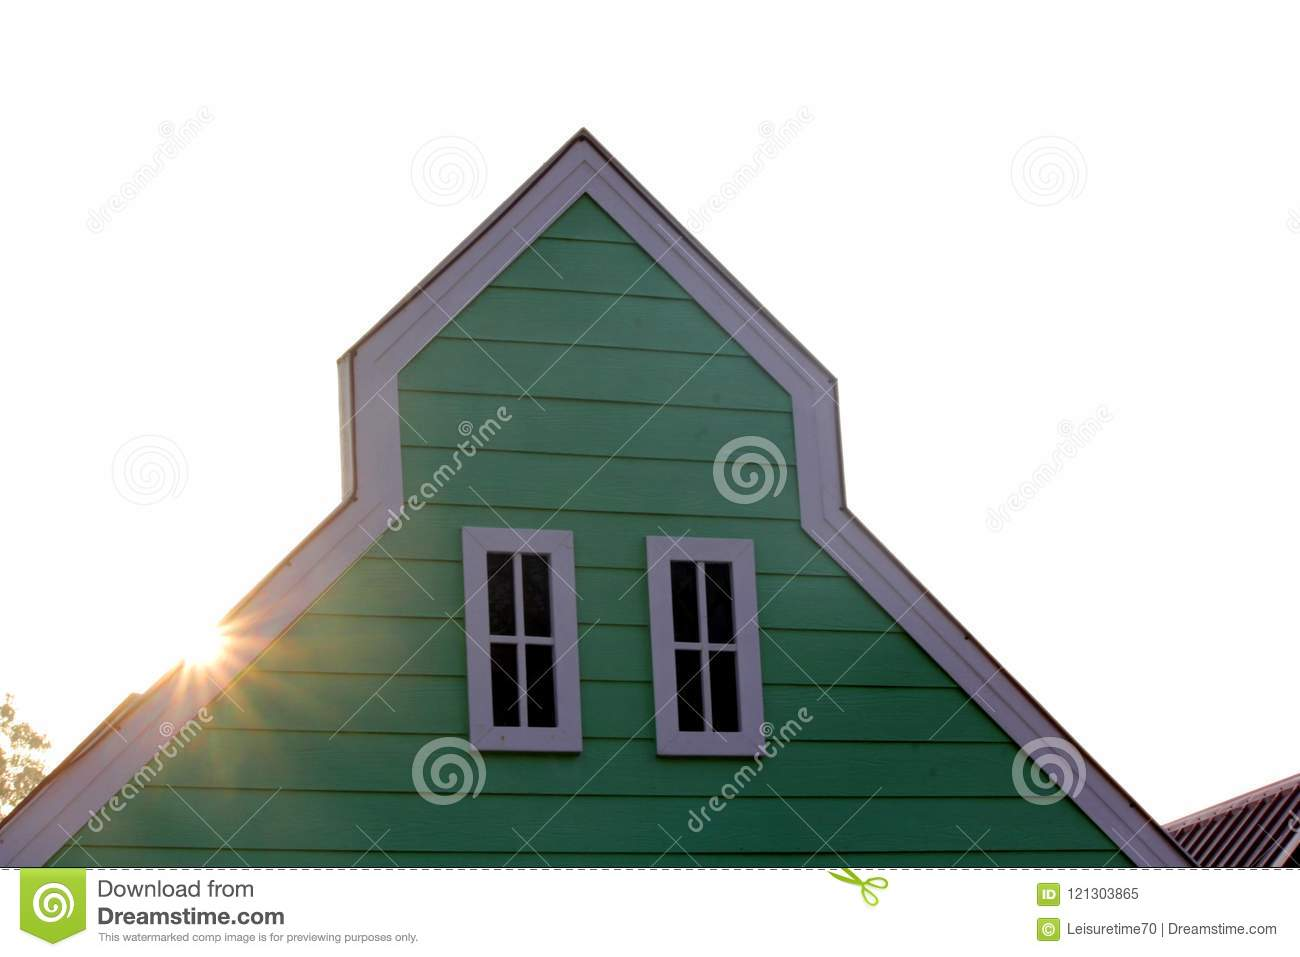 Gable roof with white windows on wooden house